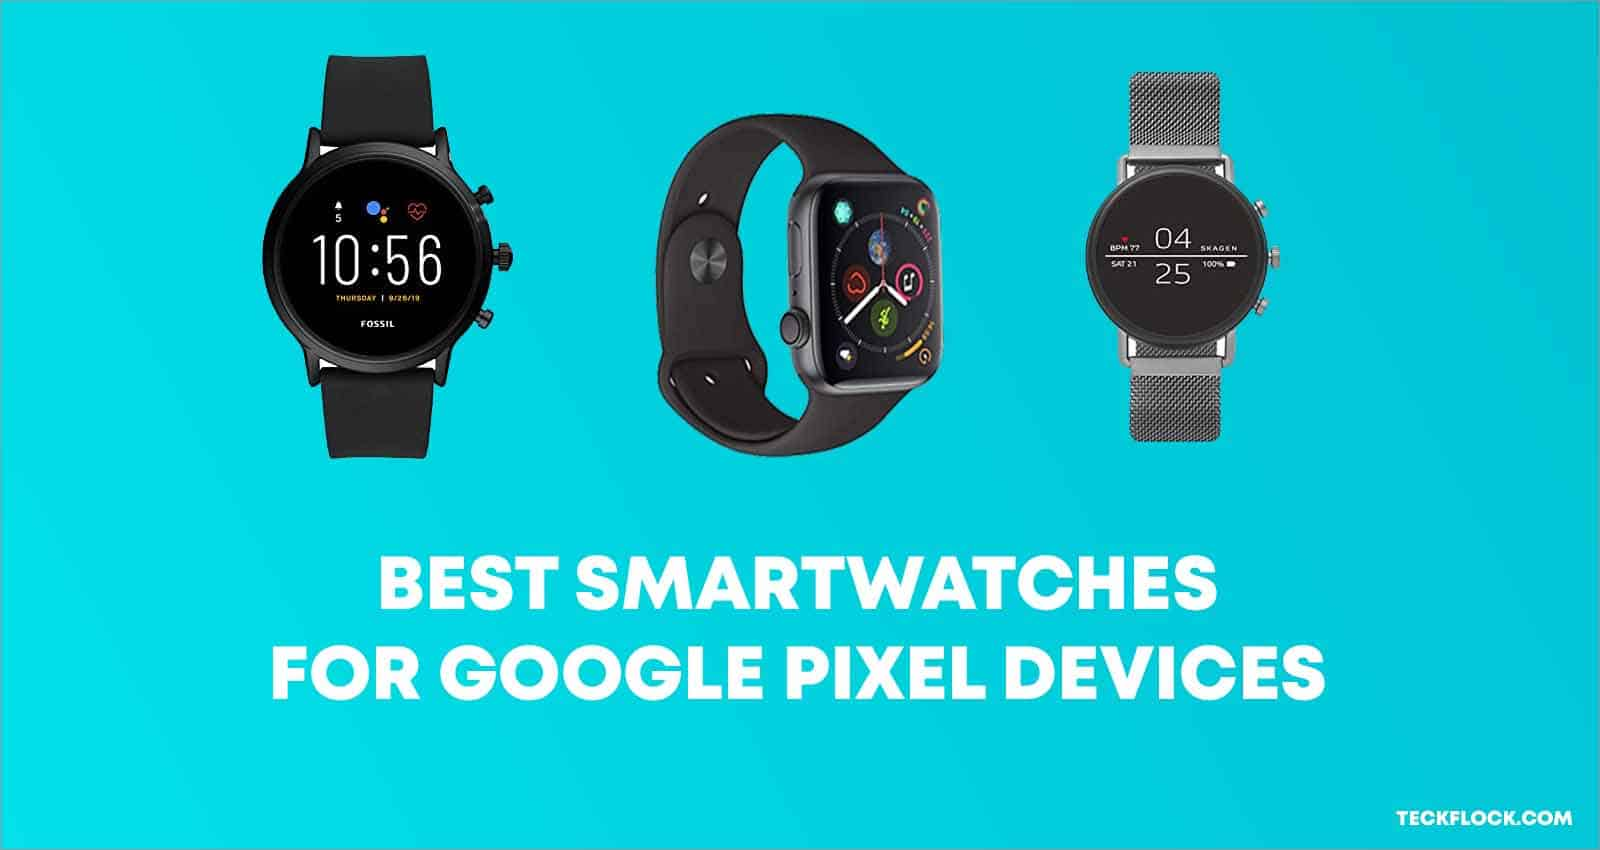 Best Smartwatches for Google Pixel